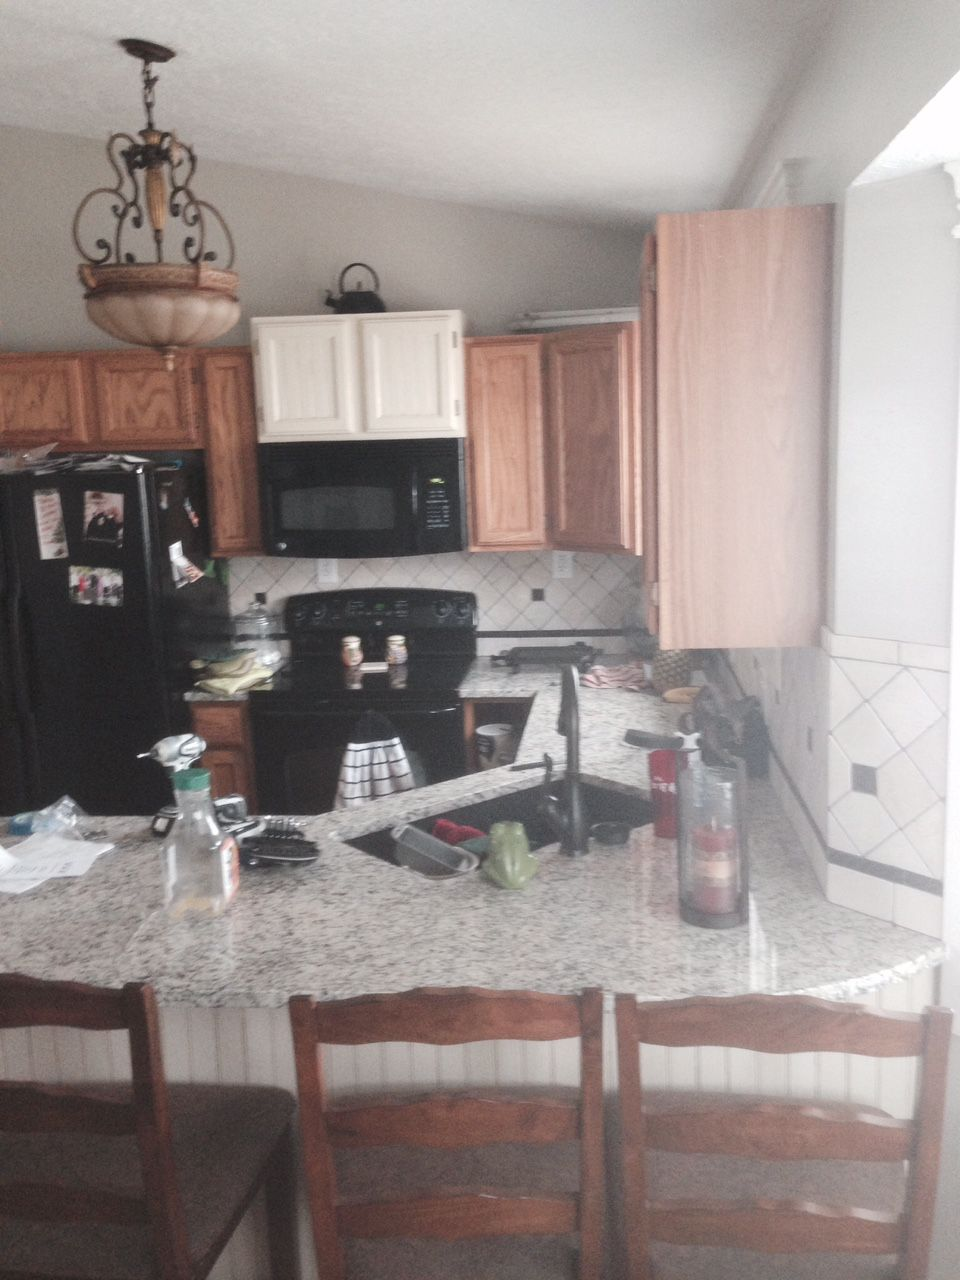 my mom s kitchen renovation is complete for under 5000 kitchen redo cool kitchens kitchen on kitchen remodel under 5000 id=26218